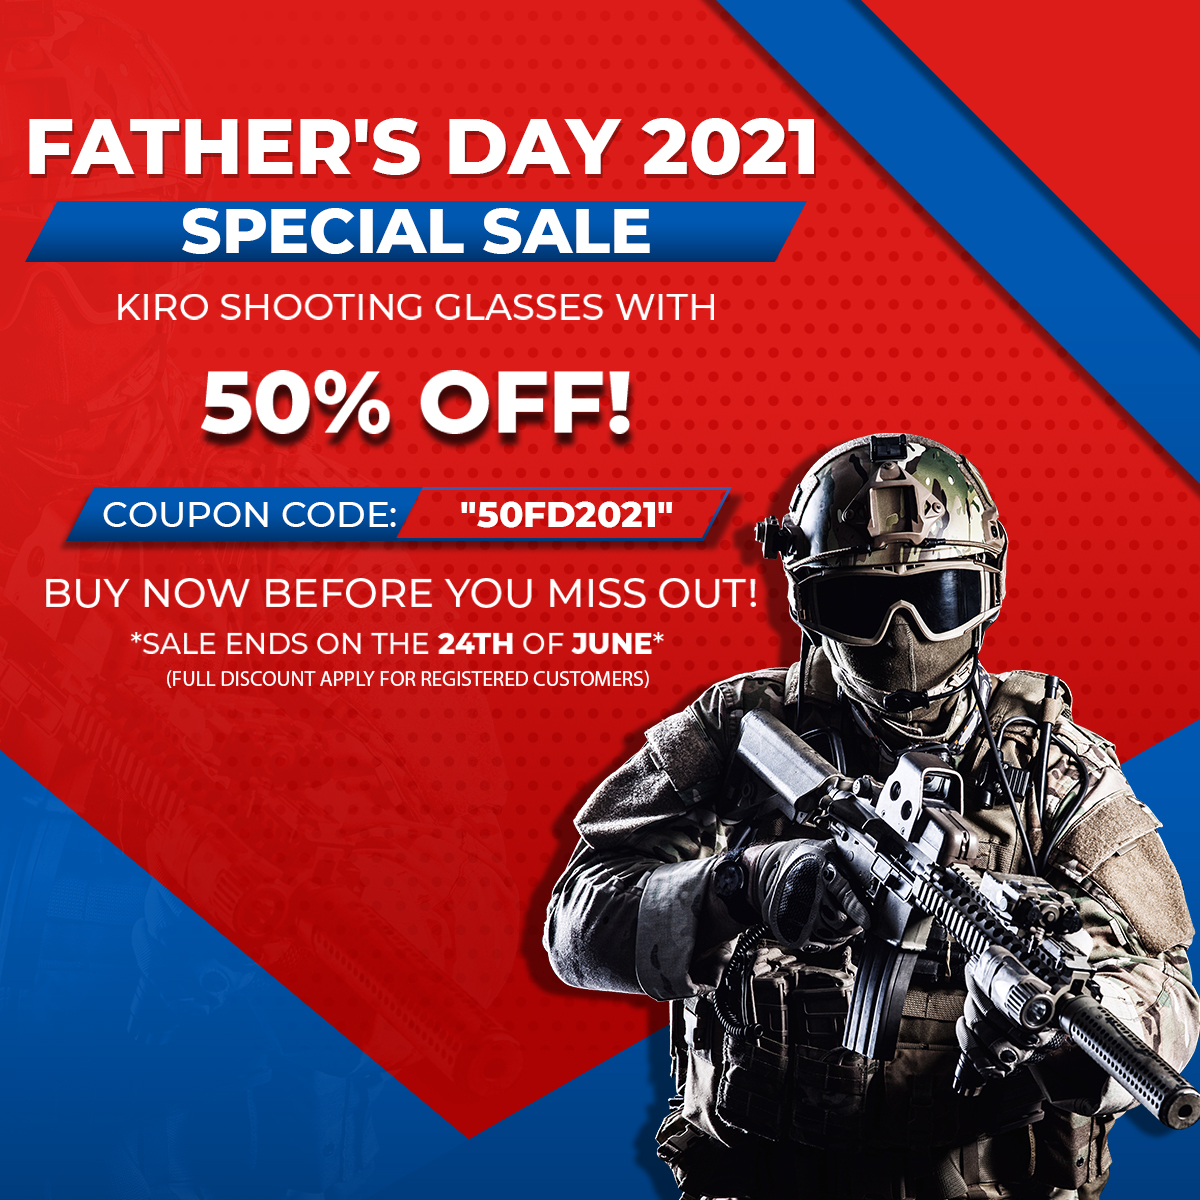 FATHERS DAY KIRO GLASSES SPECIAL SALE